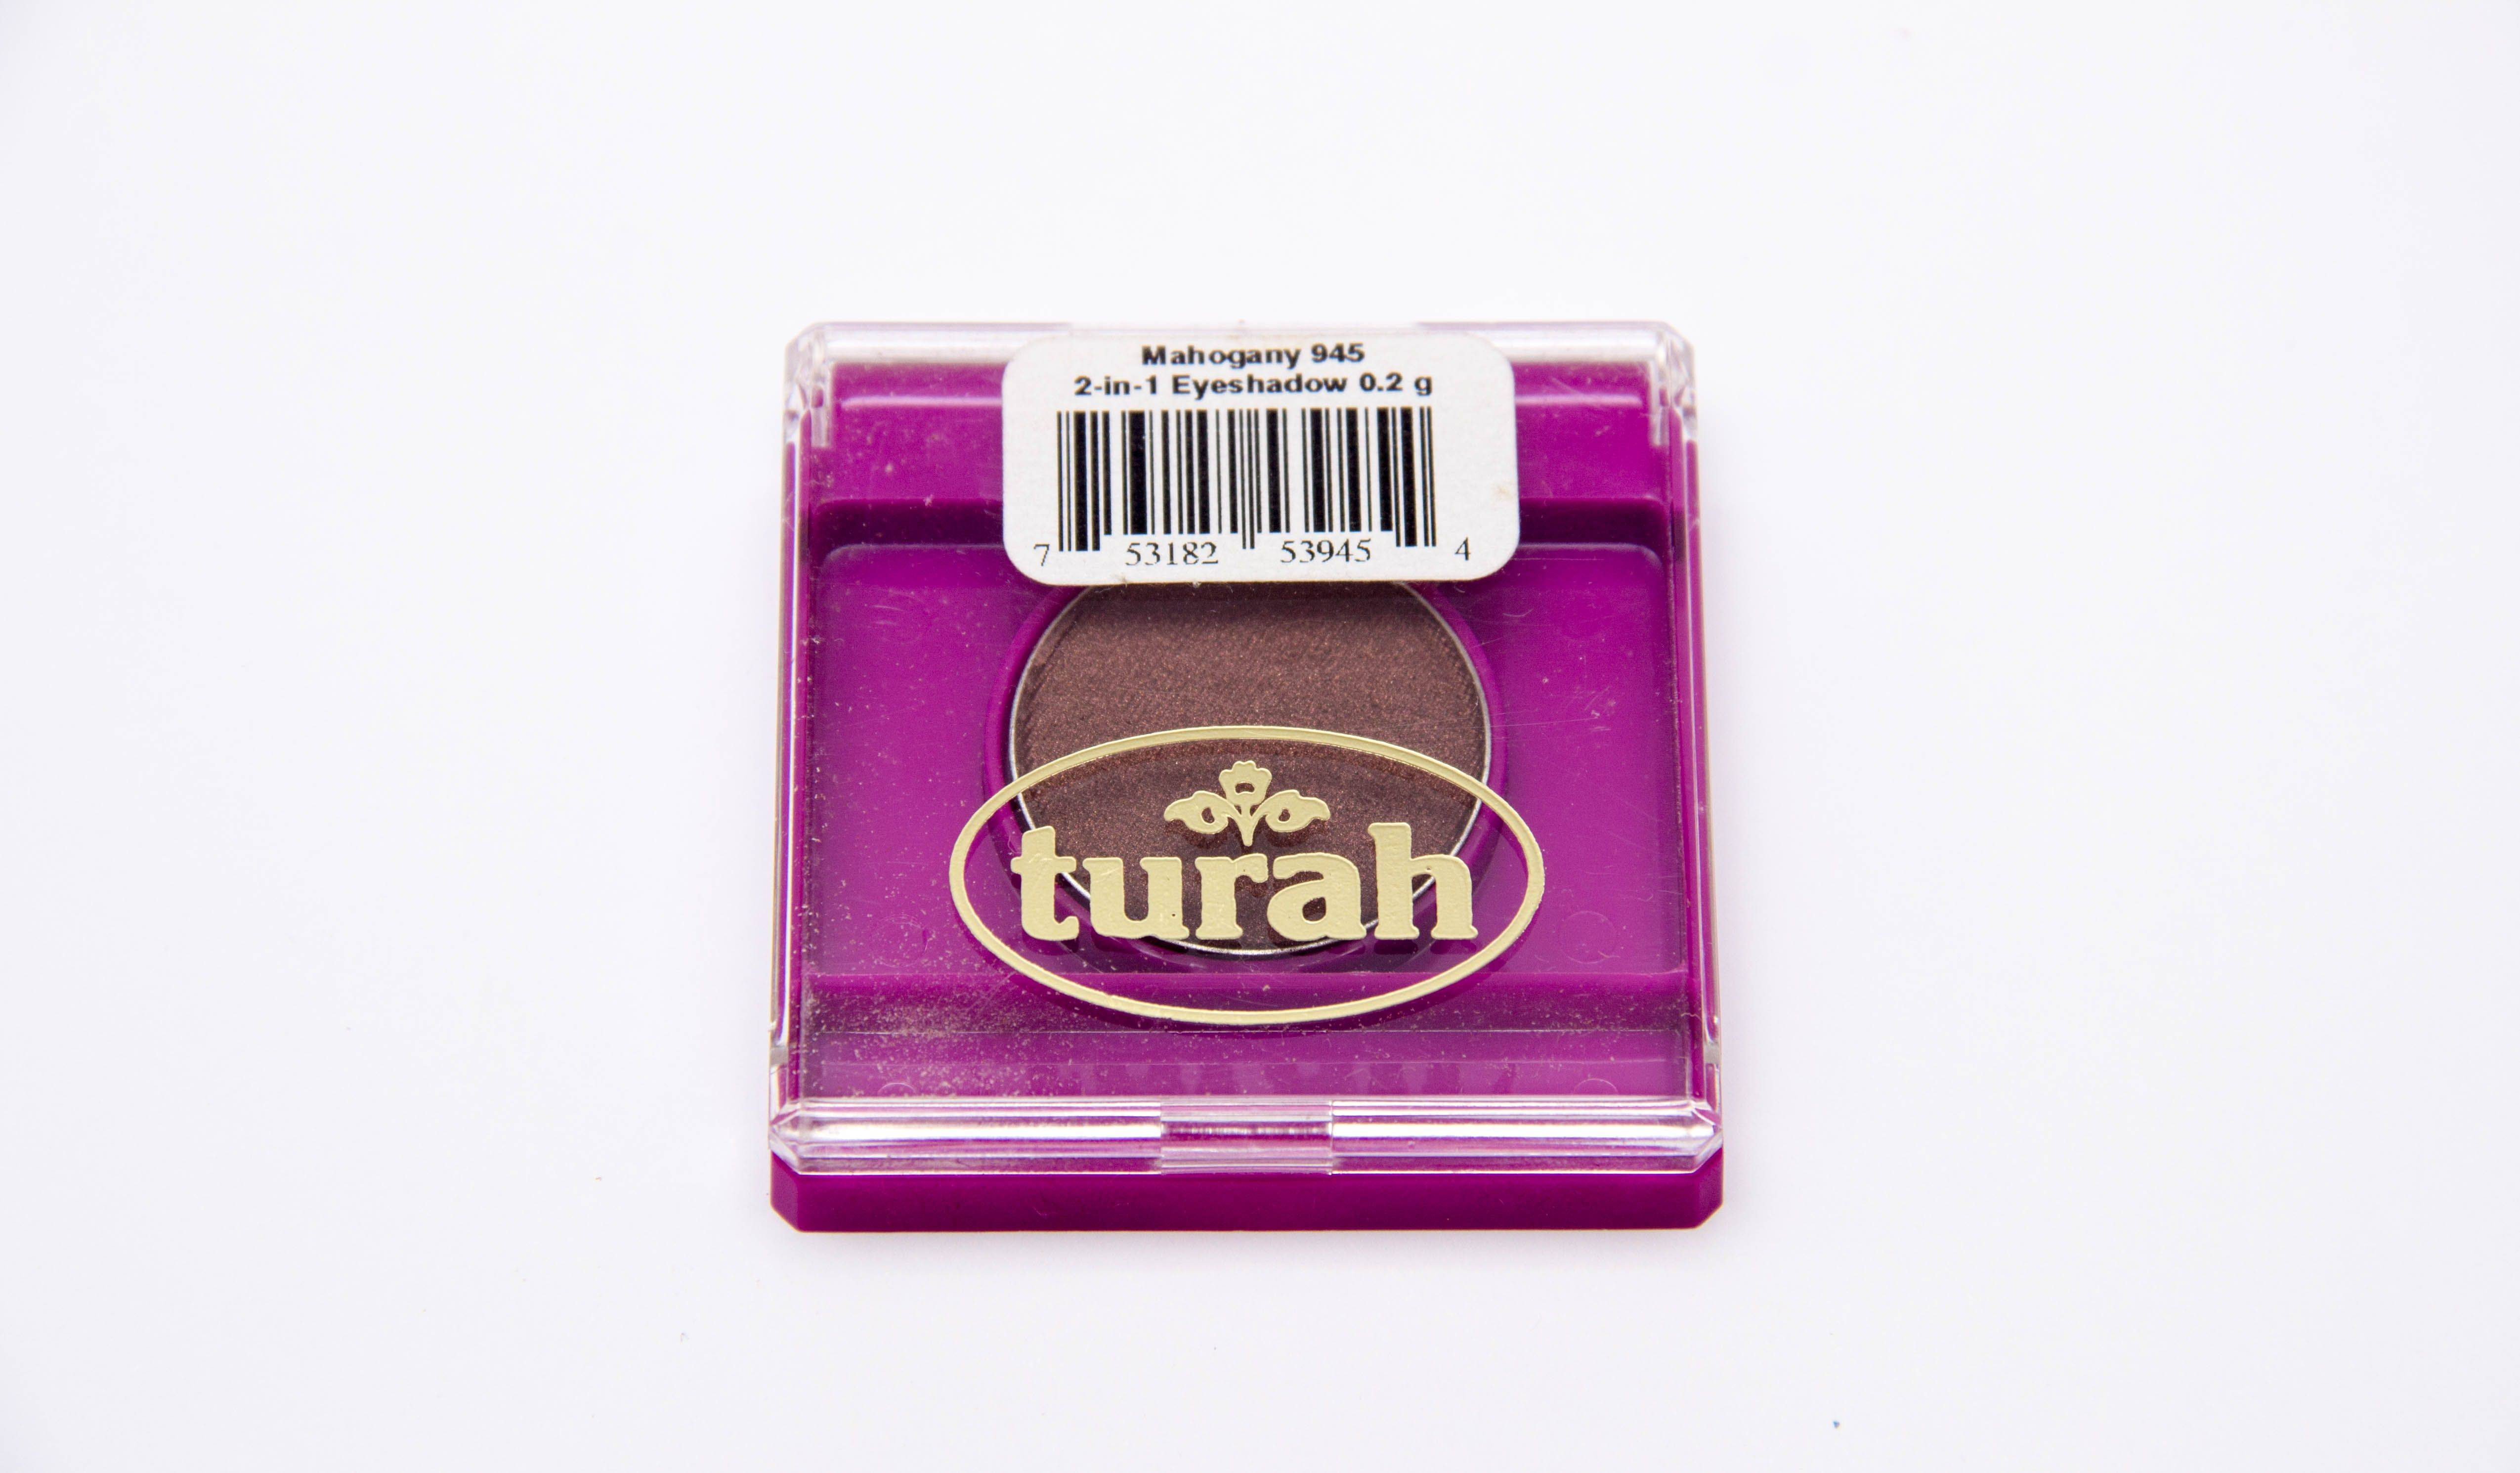 Turah 2-in-1 EyeShadow - Mahogany PE945